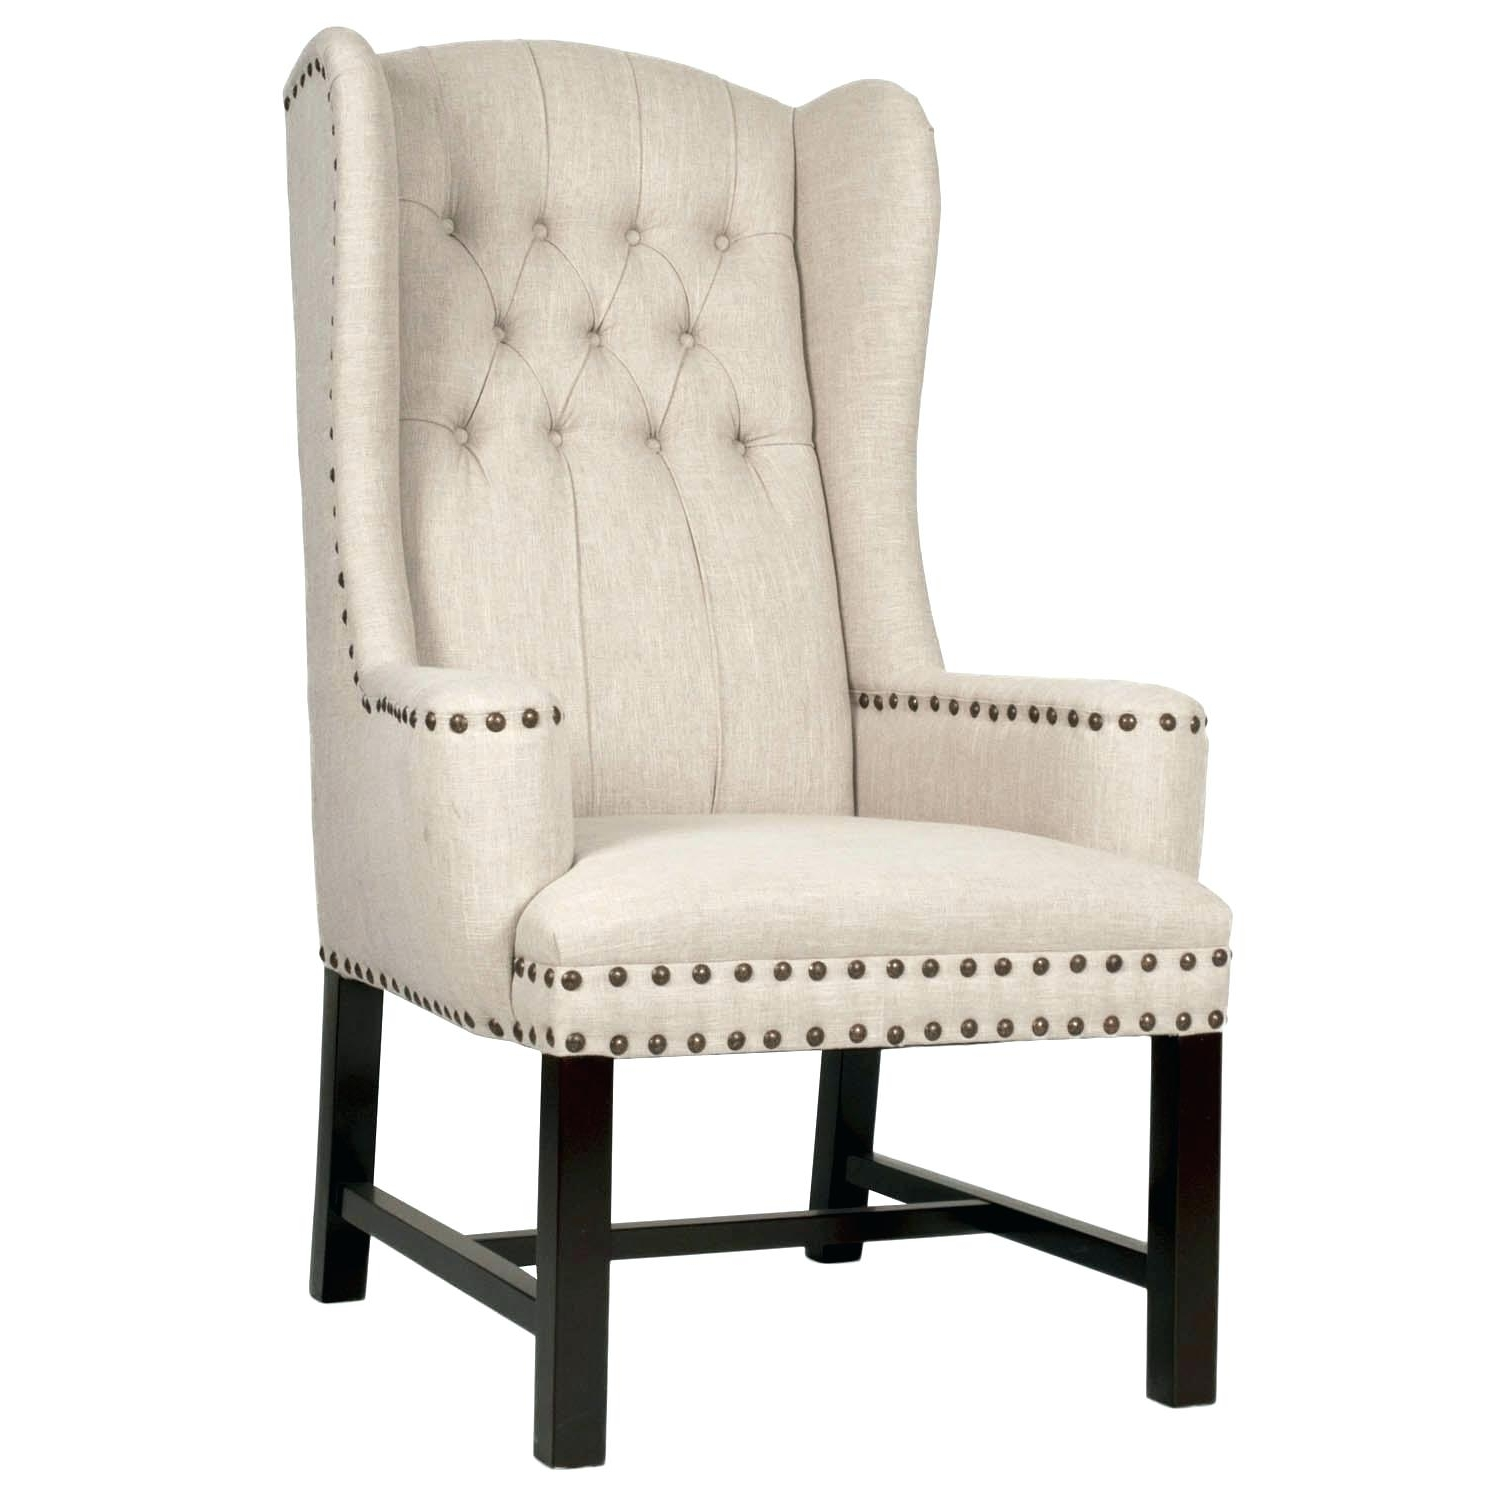 Famous Rocking Chairs For Small Spaces Pertaining To Comfortable Armchair S Rocking Chair For Nursing Lounge Chairs Small (View 18 of 20)